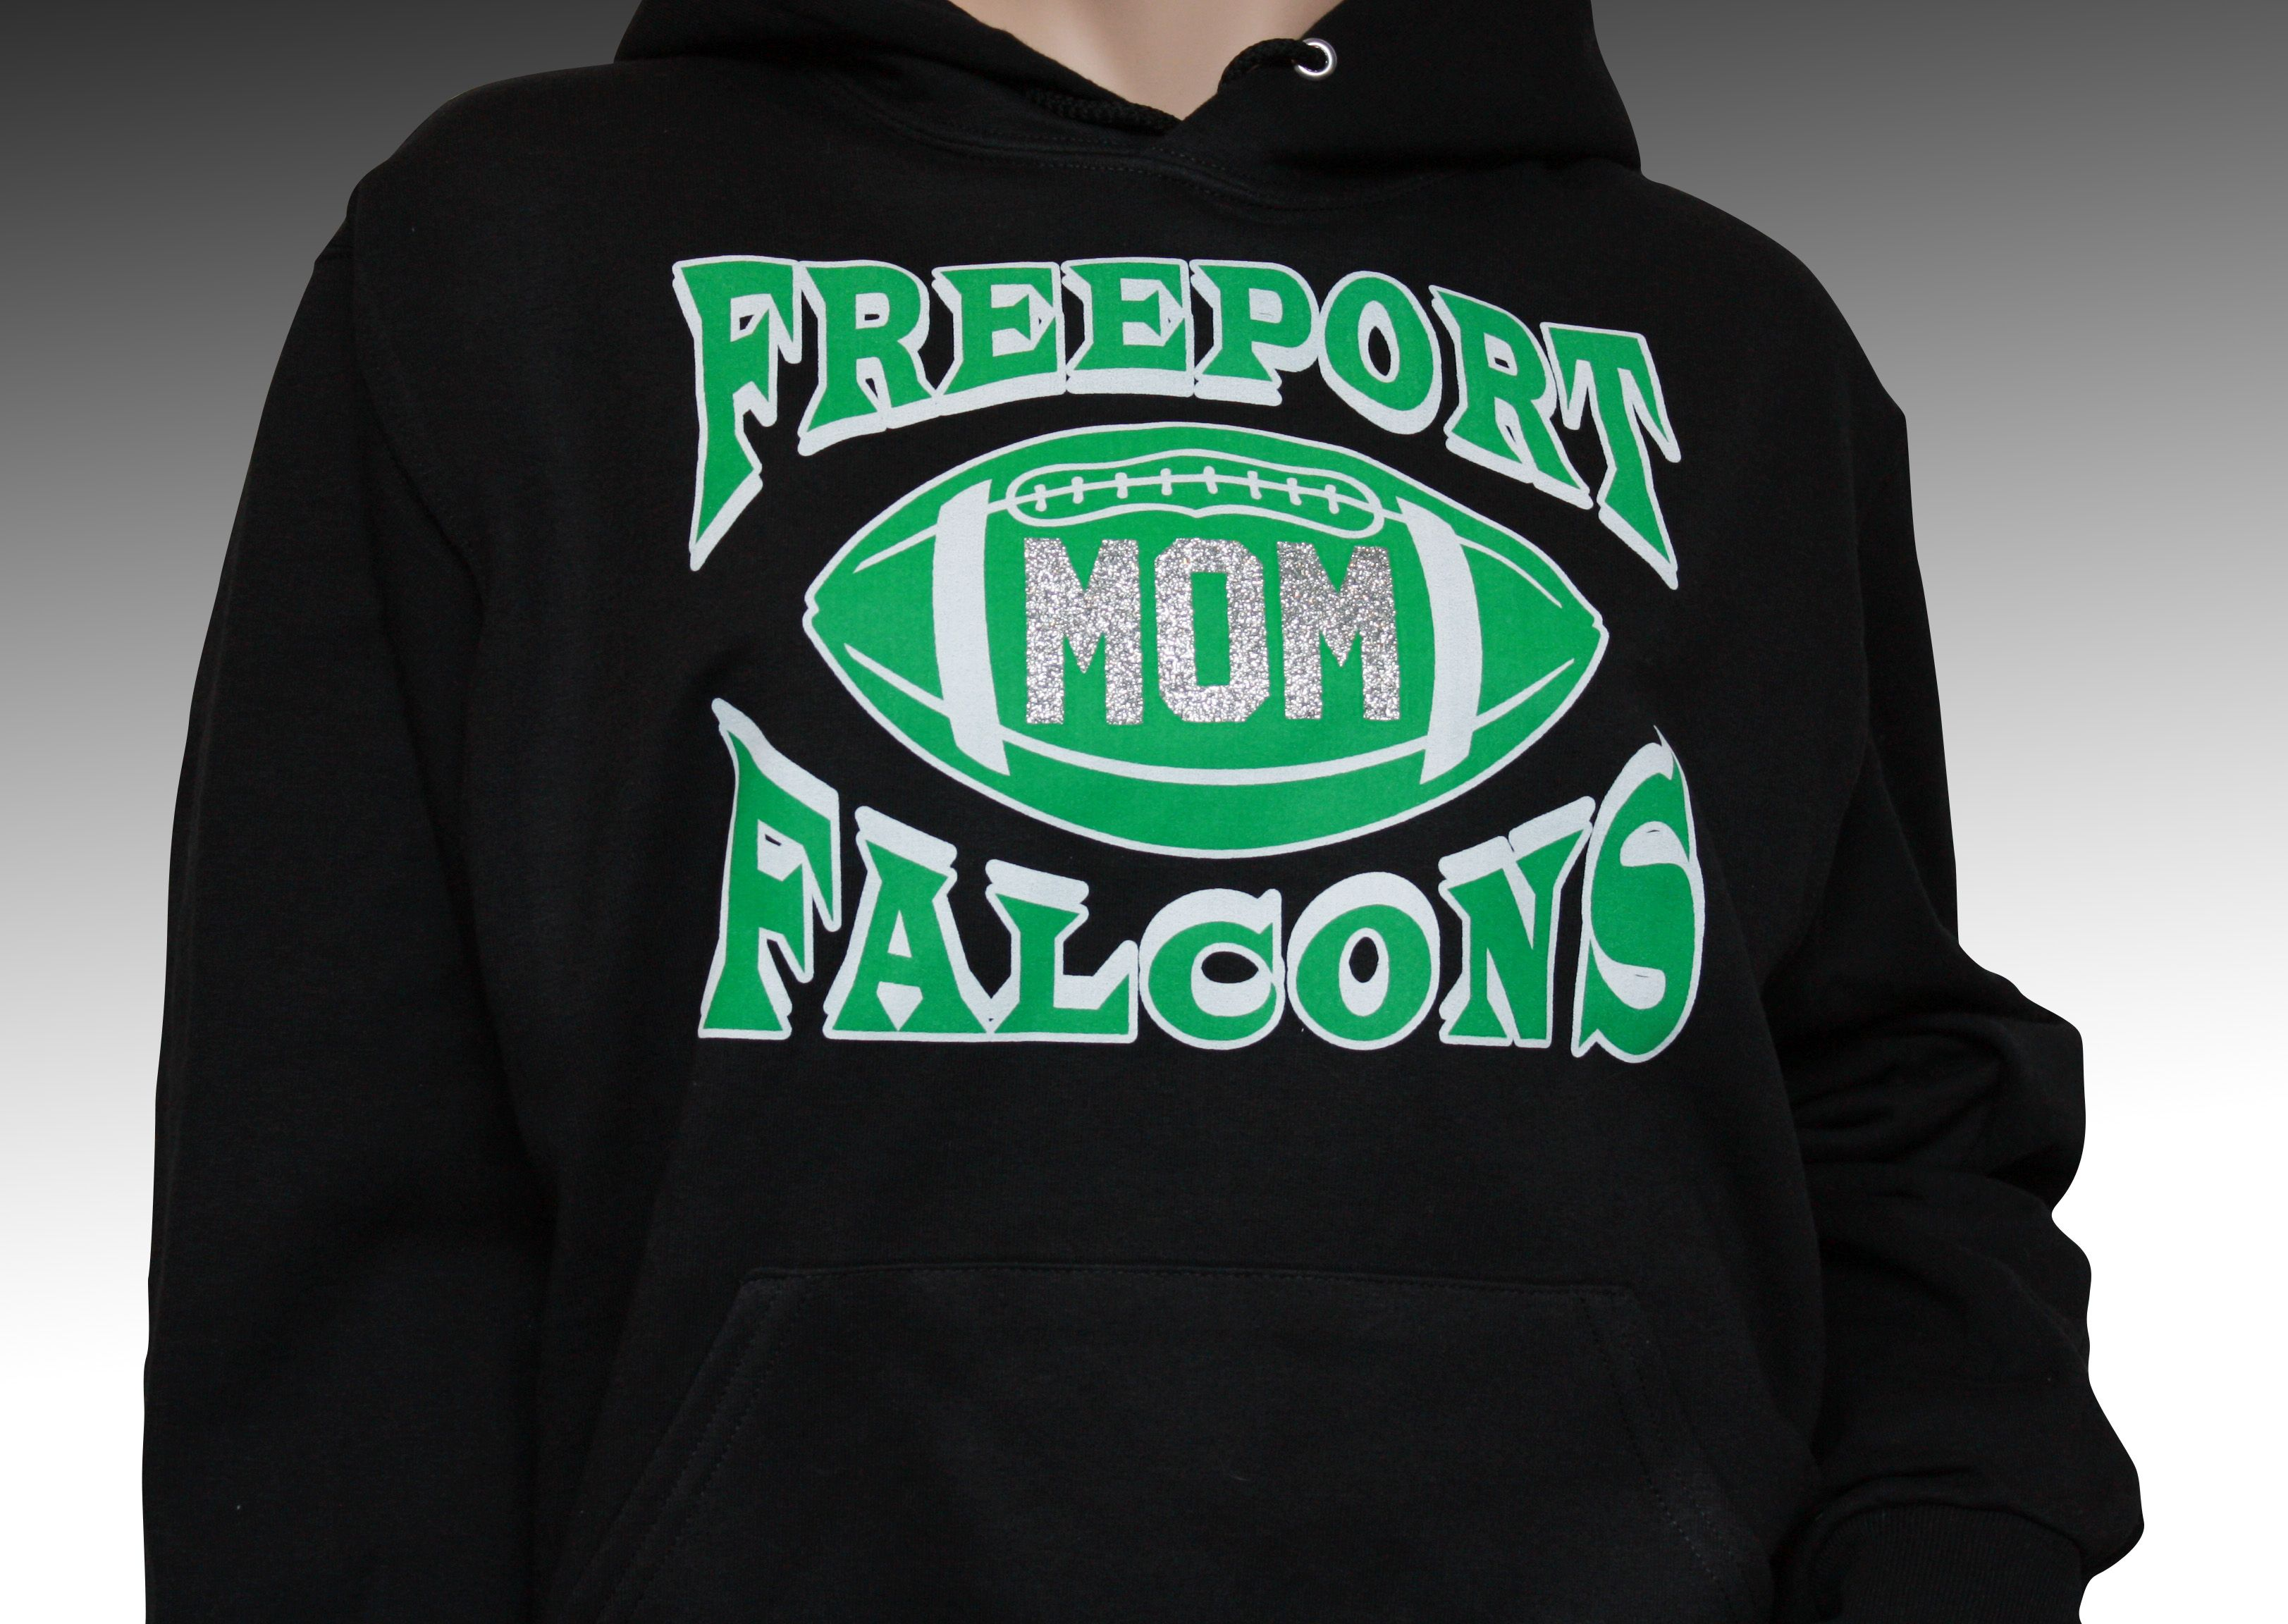 footballmom hoodie design with team name mascot and added glitter qfb - Hoodie Design Ideas